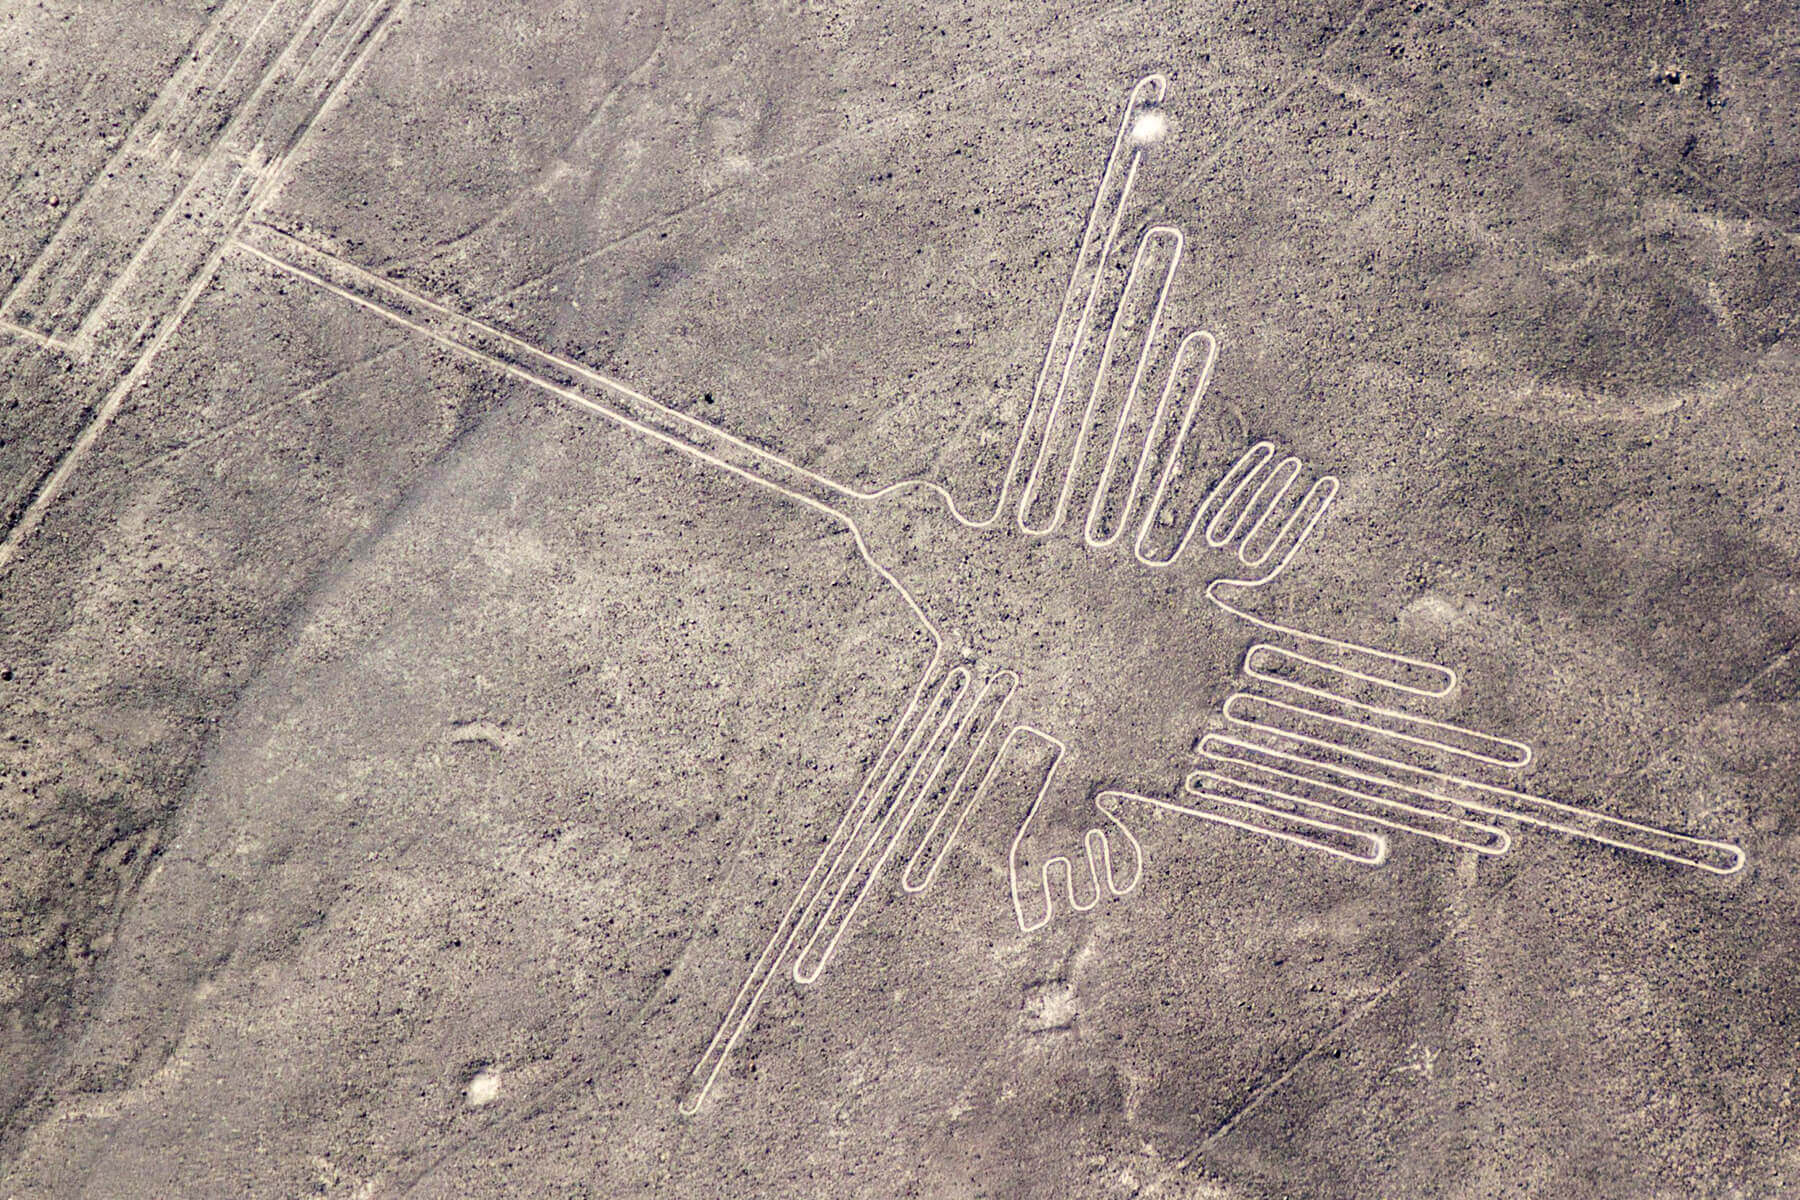 Famous Nazaca lines in Peru - here you can see the hummingbird